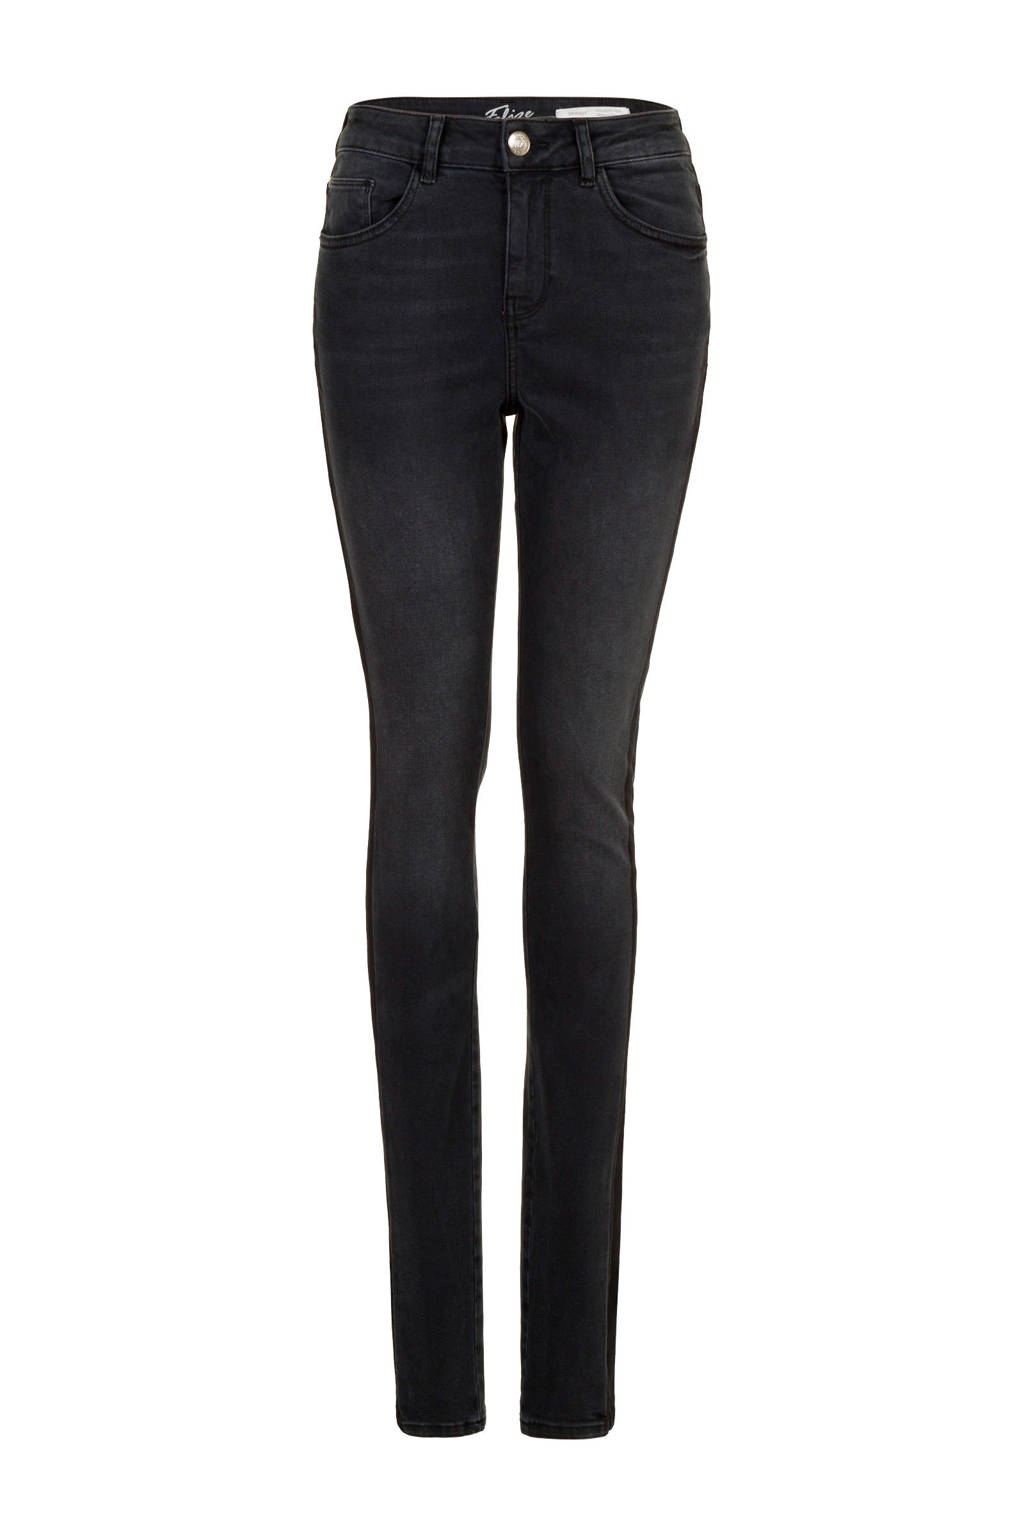 Miss Etam Lang high waist slim fit broek zwart 36 inch, Zwart